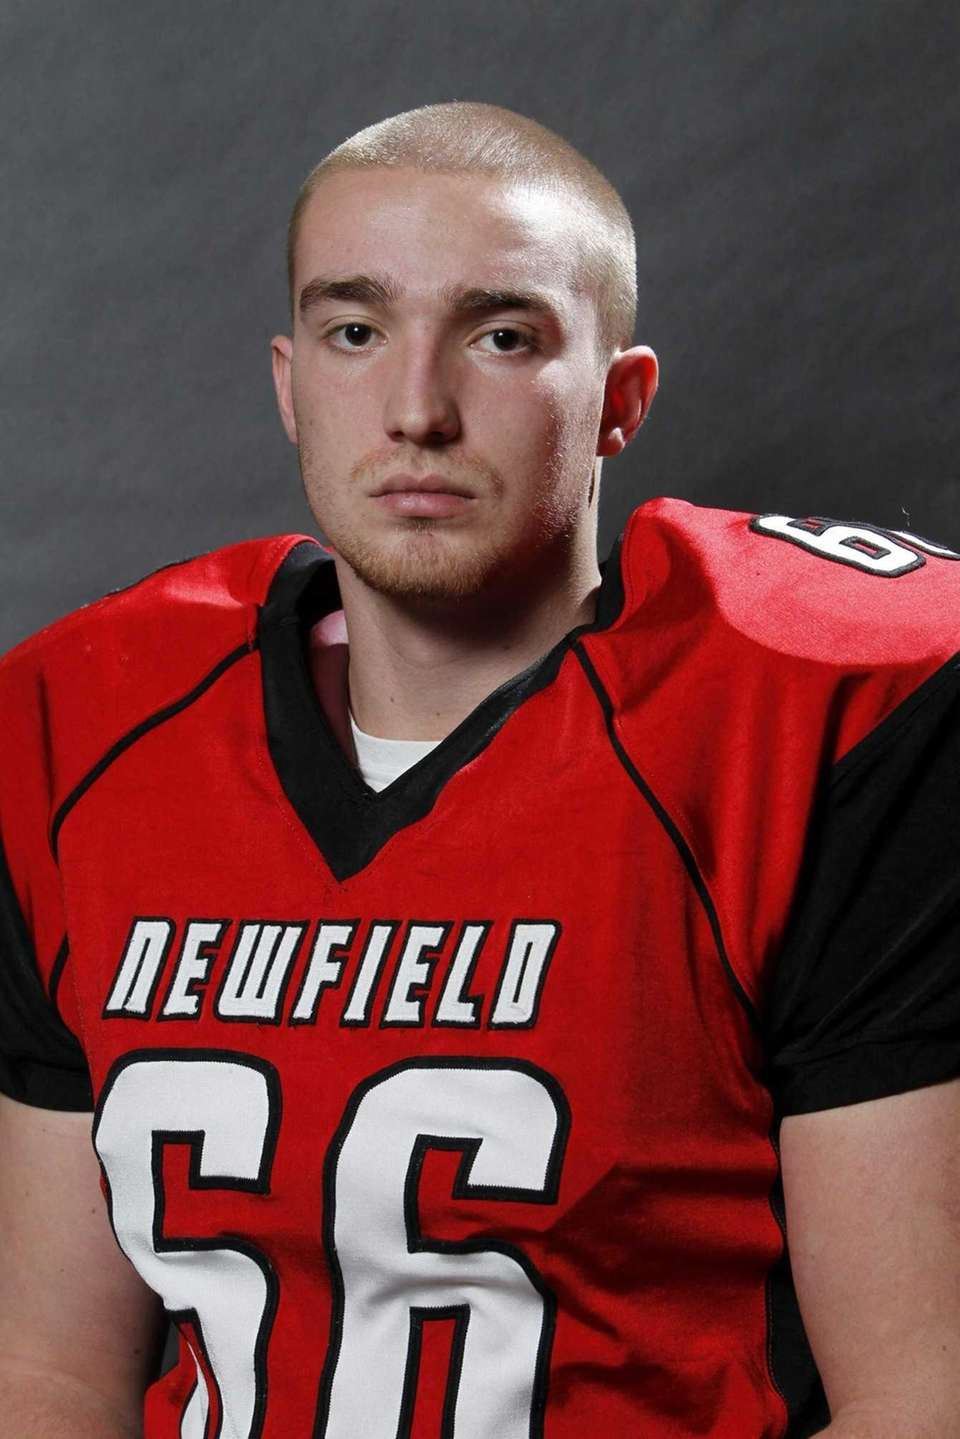 JAMES MANGINELLI Newfield, DT, 6-3, 255, Senior Had